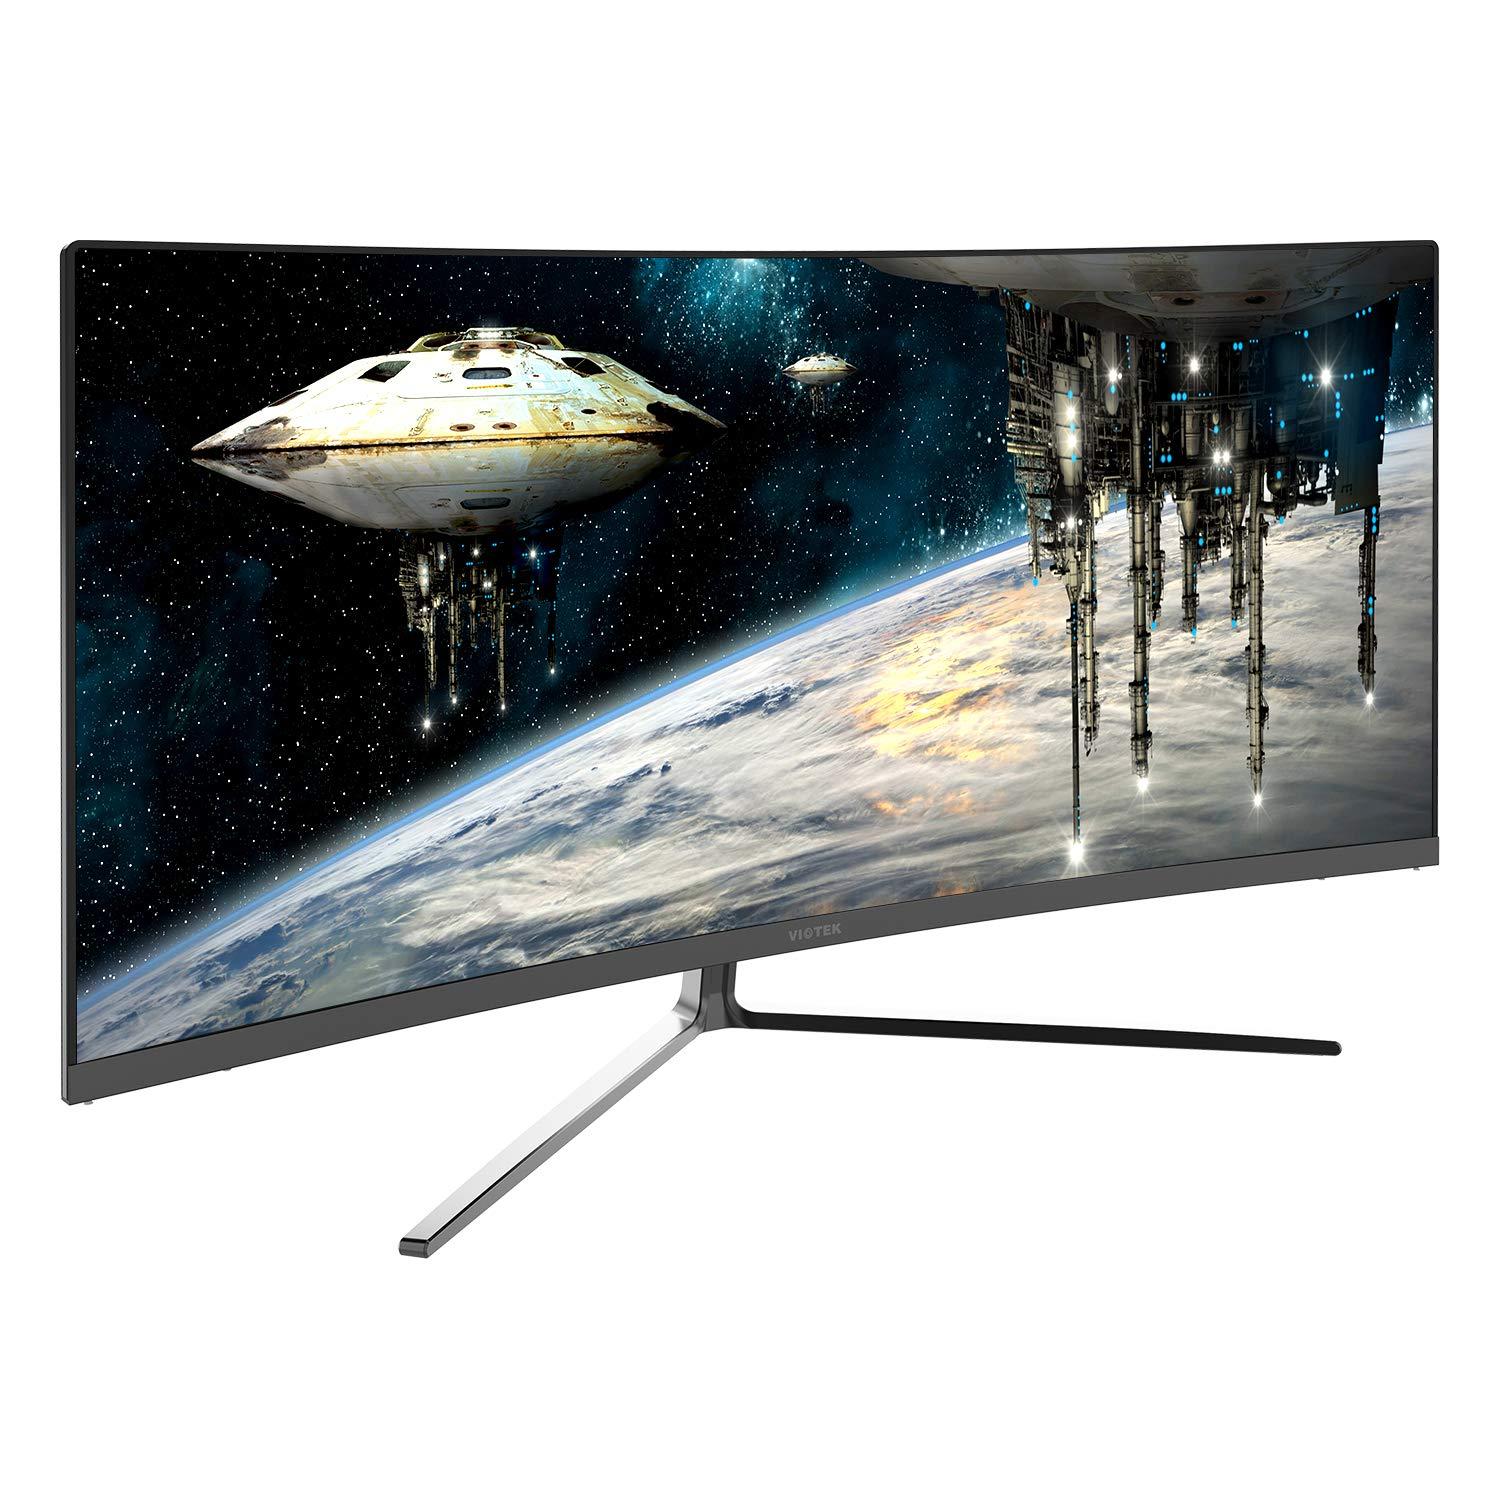 Viotek GN34CB 34-Inch 21 9 Ultrawide Curved QHD Gaming and Professional Computer Monitor, 100Hz 1440p, FreeSync FTS RTS VESA Black